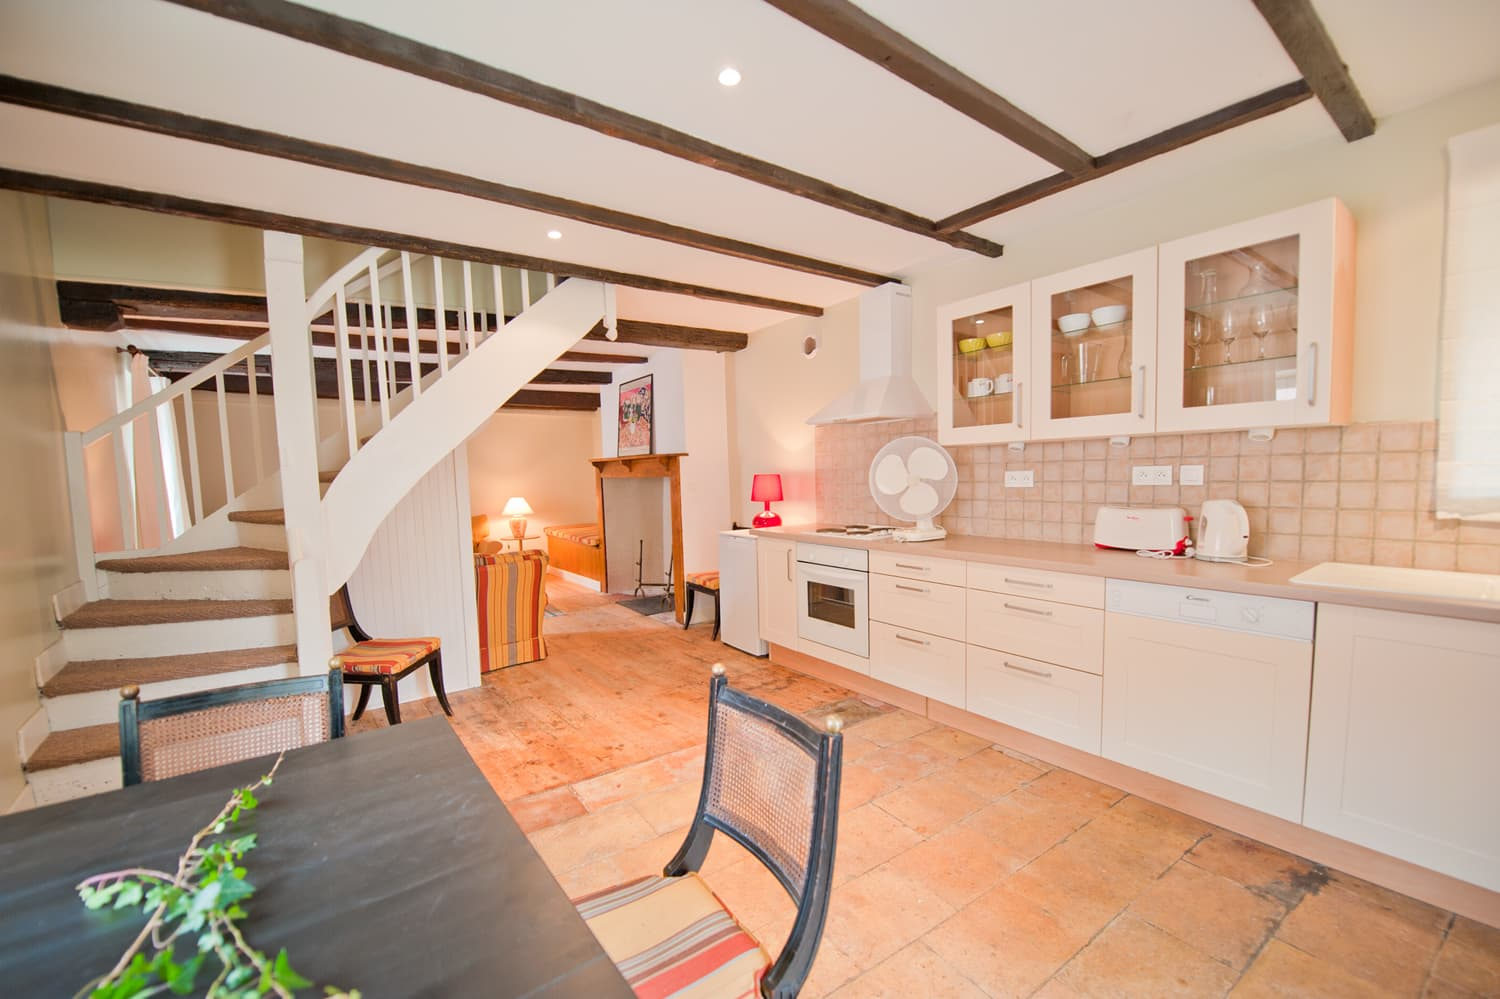 Cottage kitchen in South West France holiday home